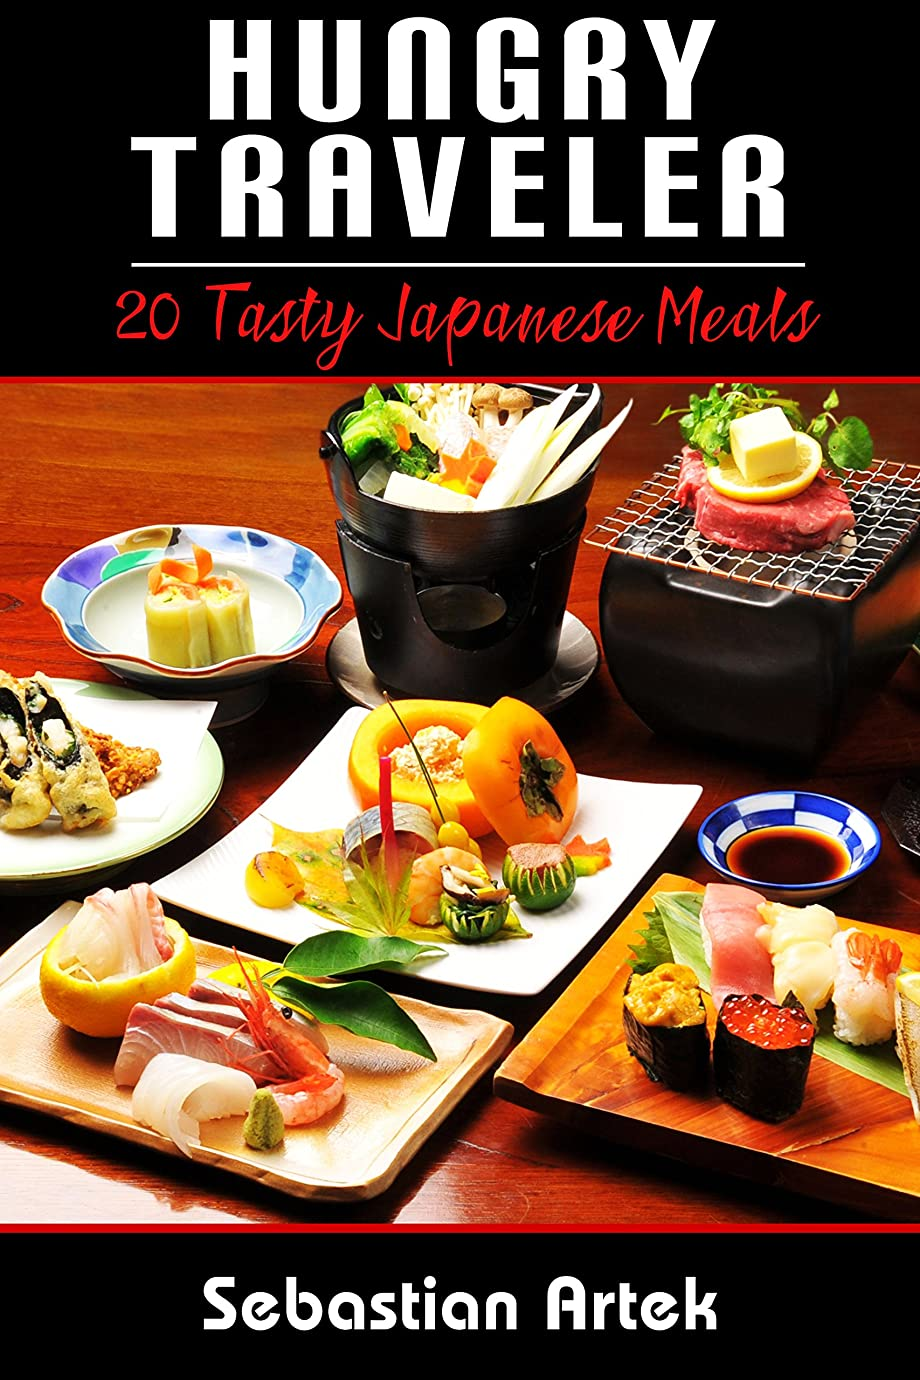 経由でブルジョンただやるHungry Traveler: 20 Tasty Japanese Meals (English Edition)